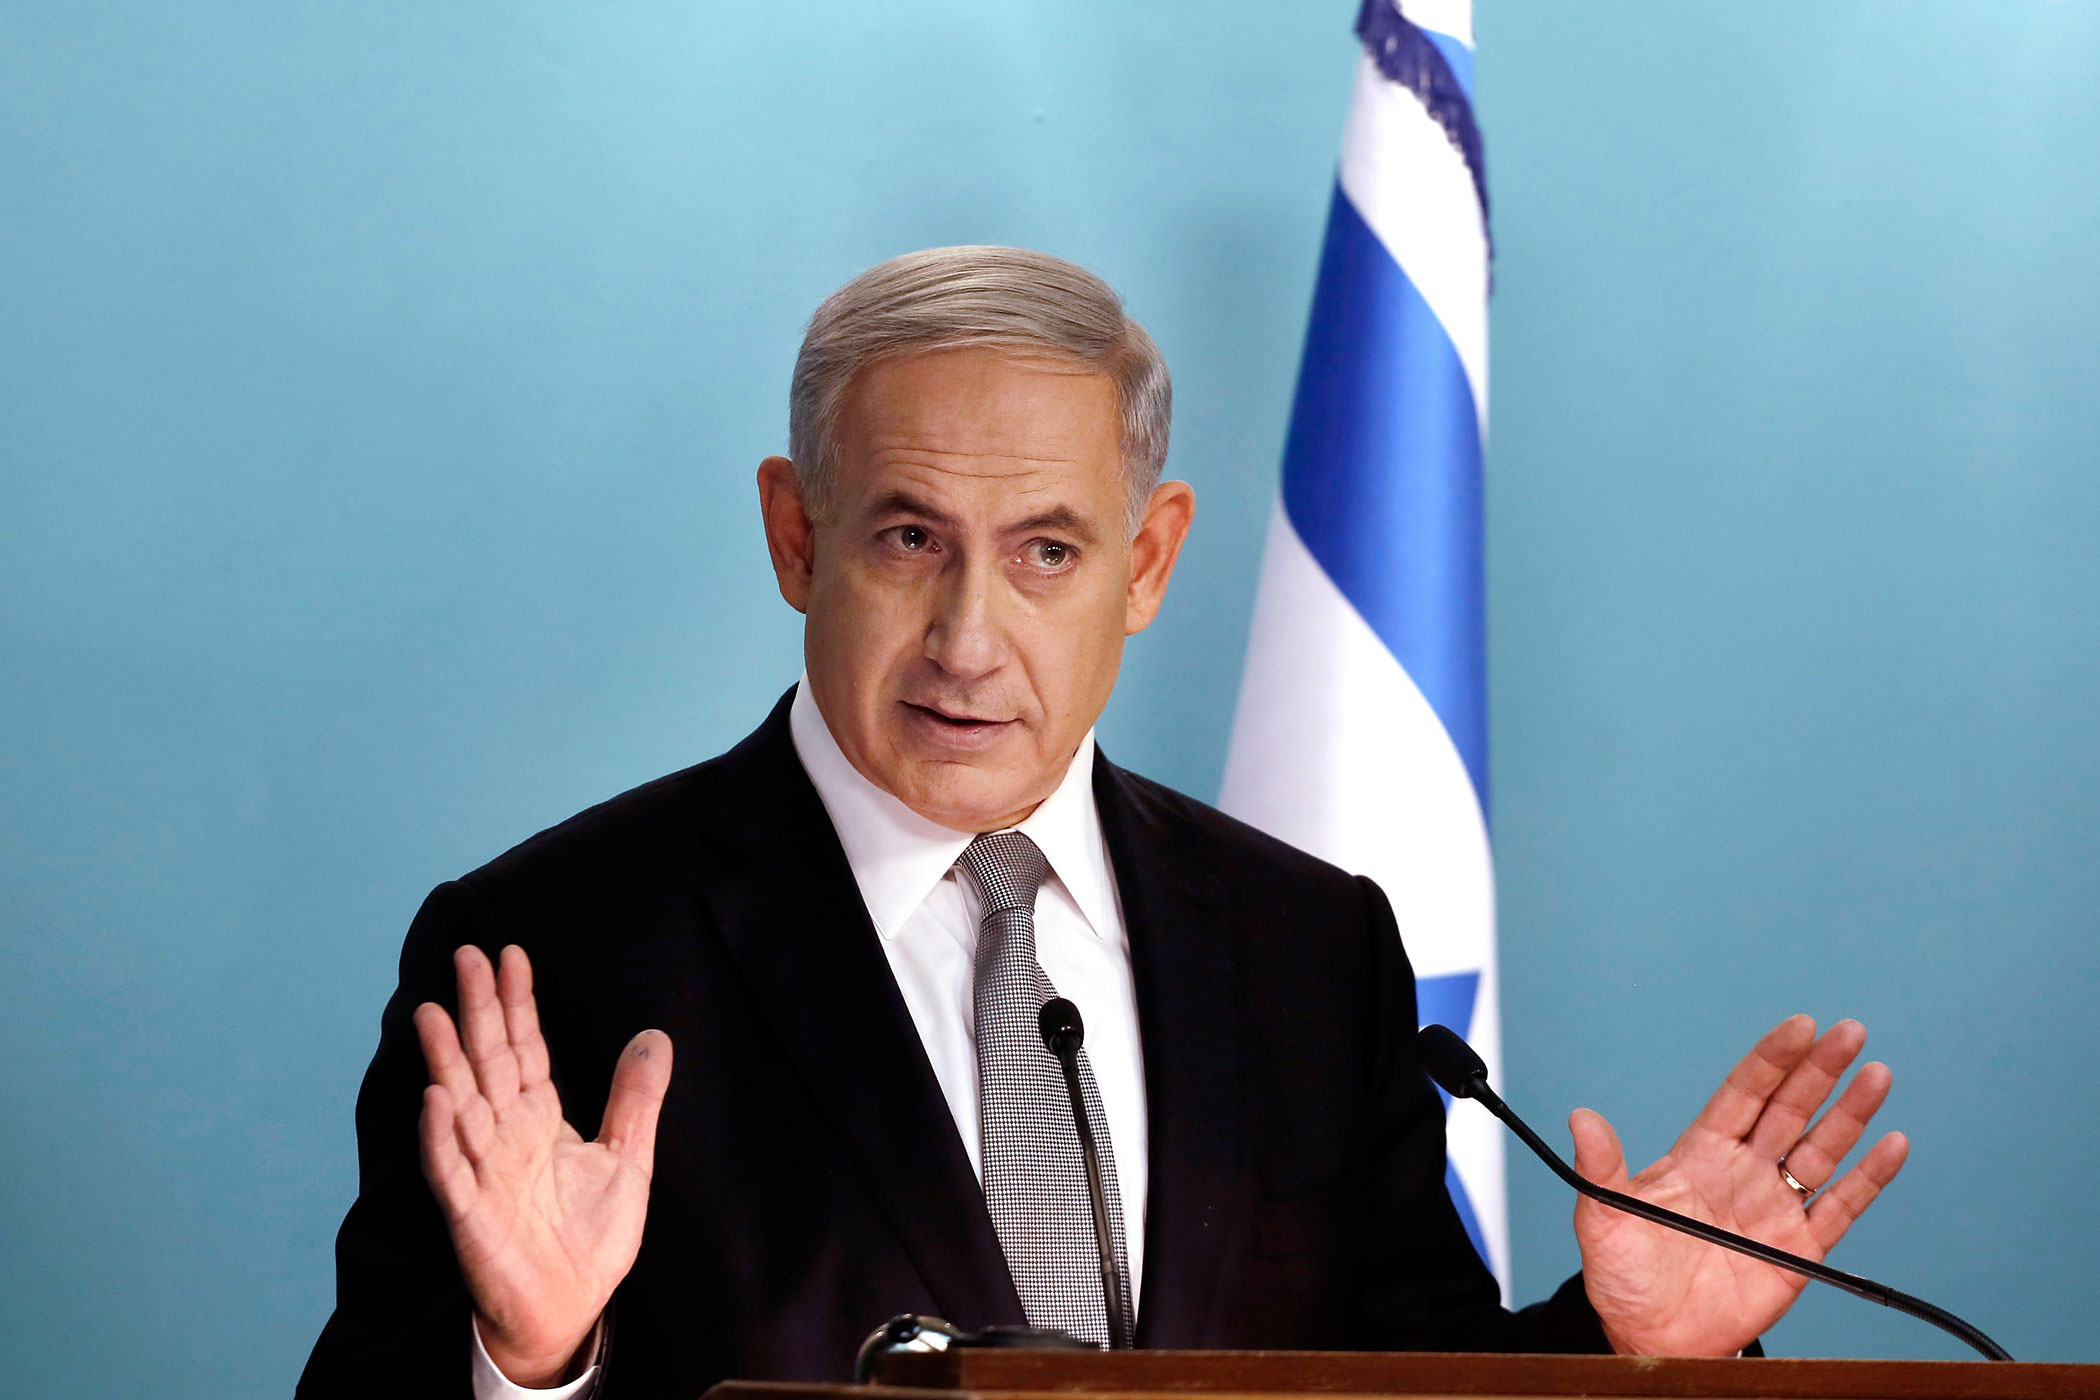 Israeli Prime Minister Benjamin Netanyahu speaks during a news conference at his office in Jerusalem on December 2, 2014.